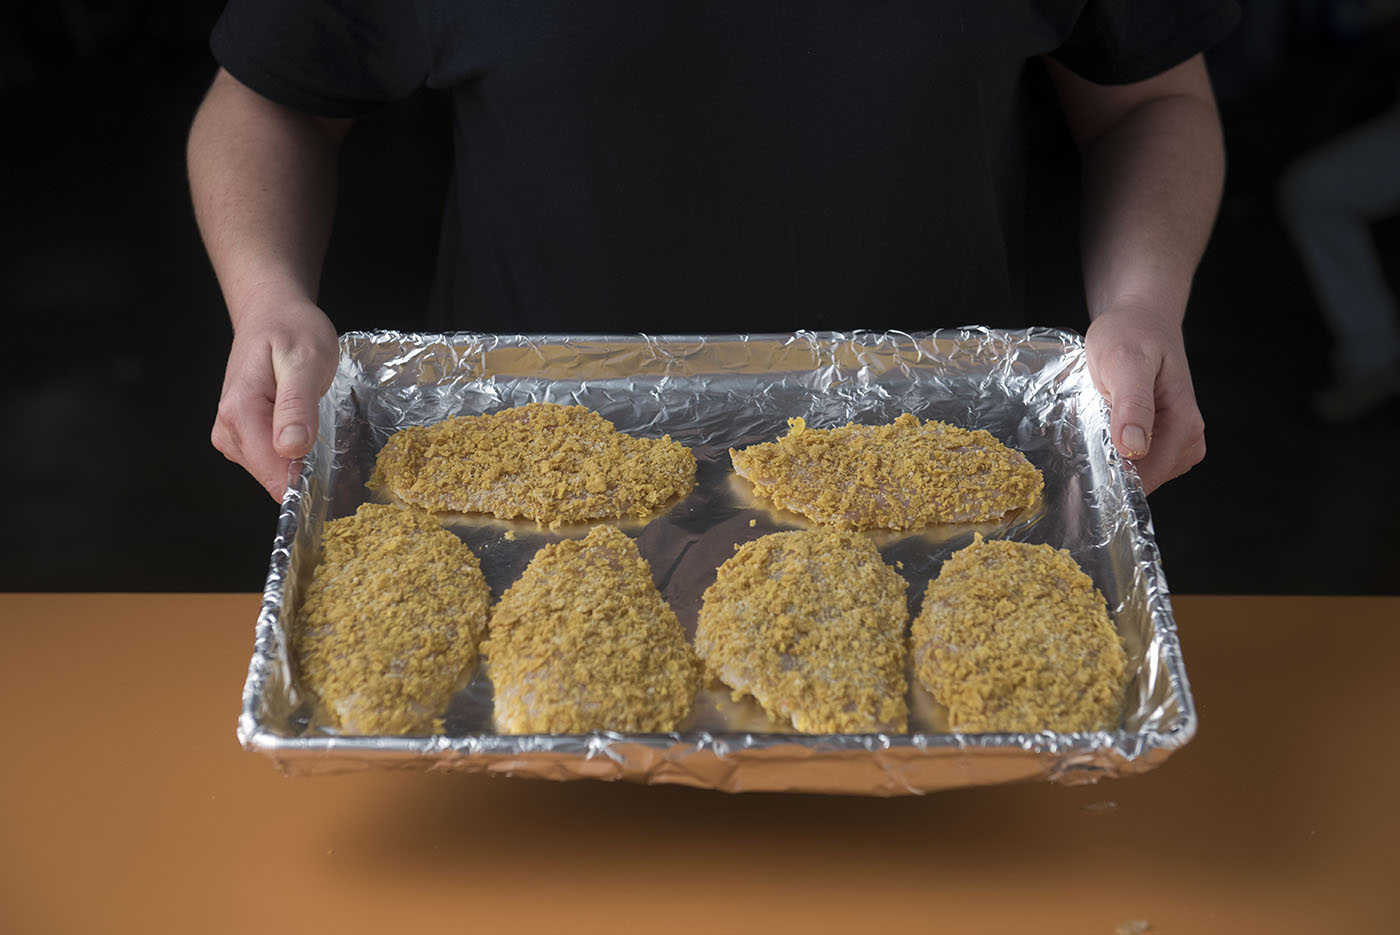 Six breaded chicken filets are on a foil-wrapped baking sheet.